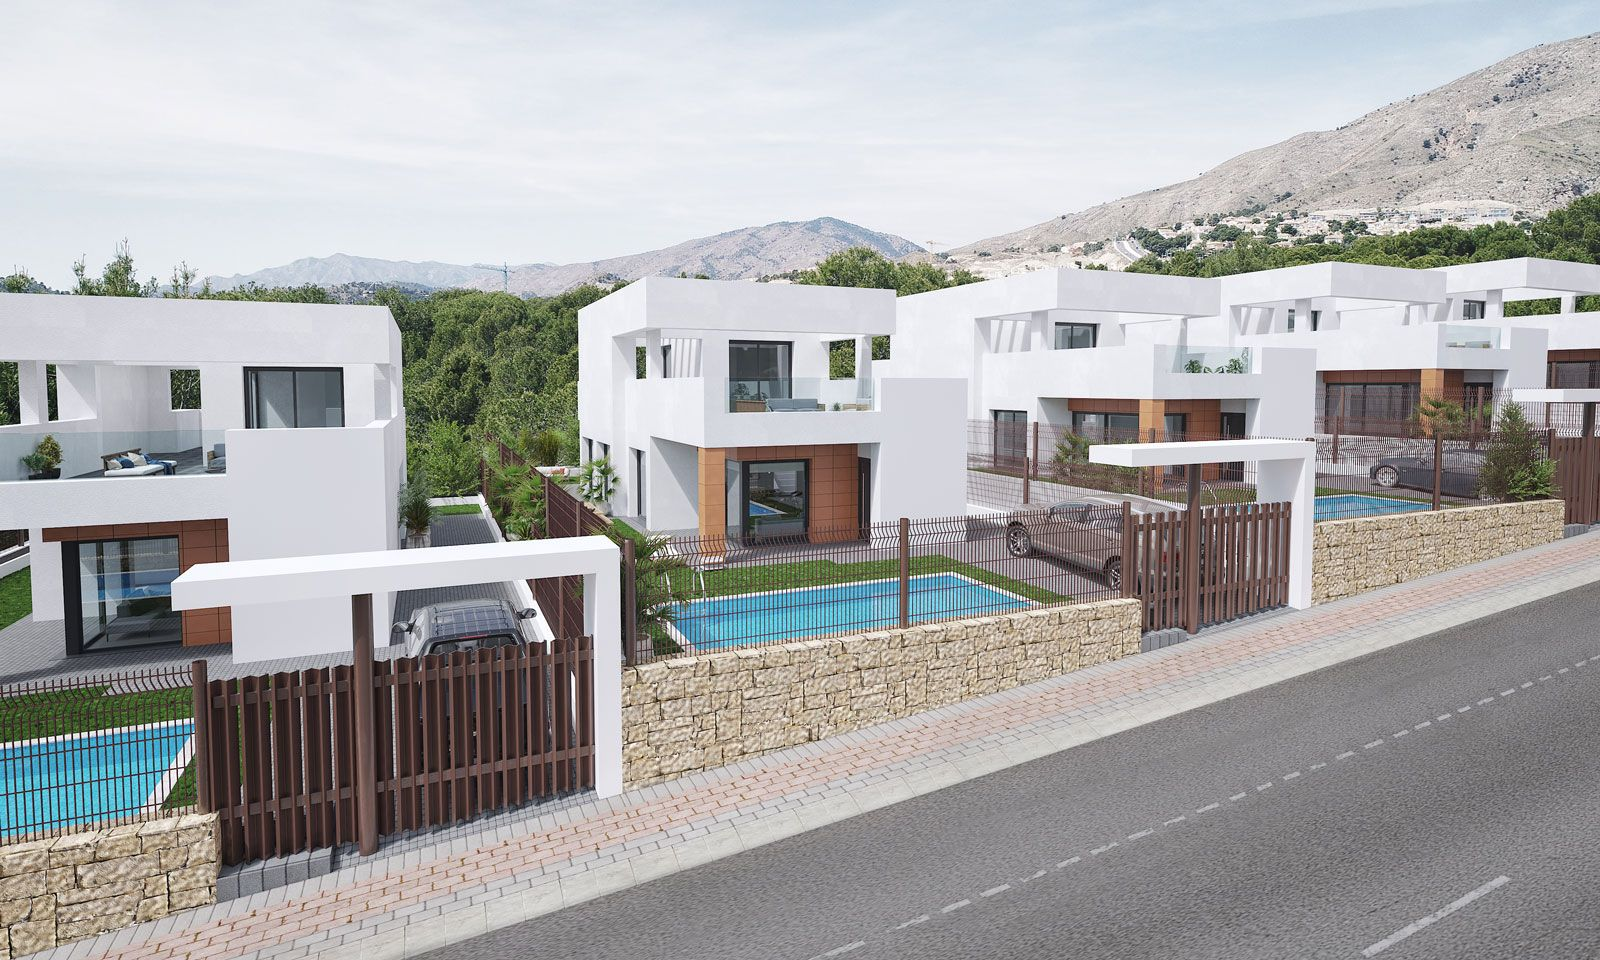 Villas unifamiliares en Finestrat 16